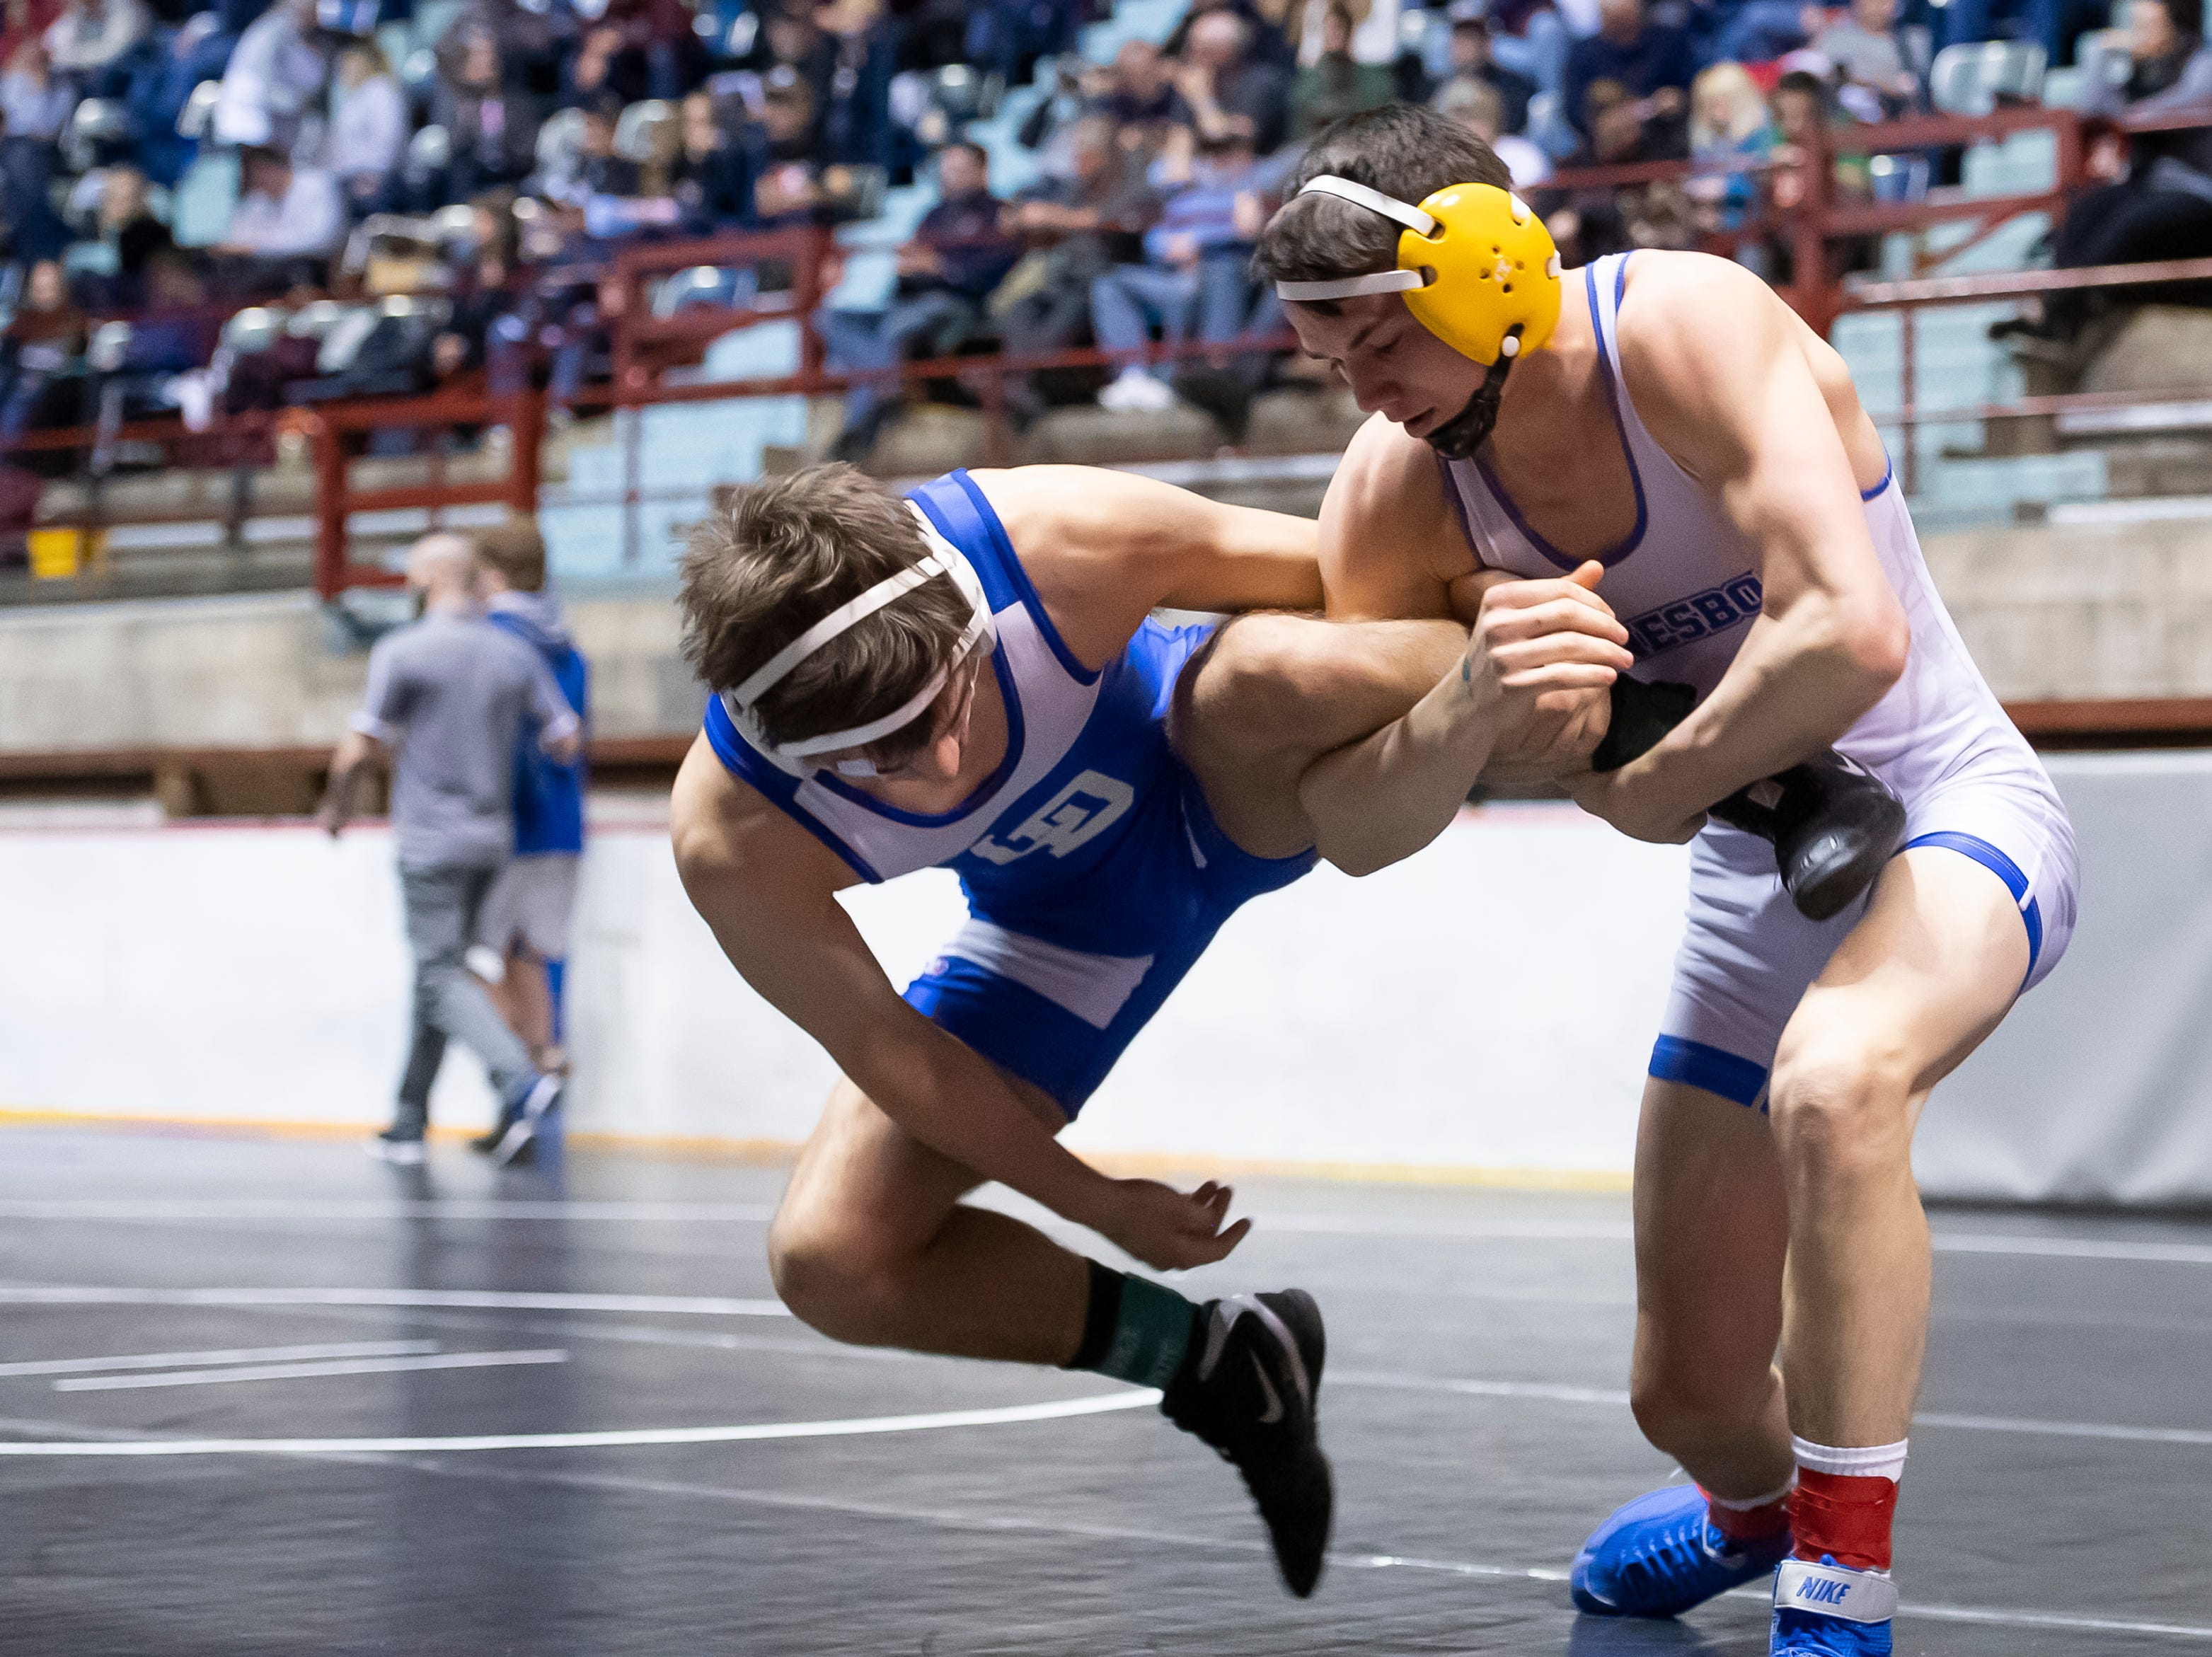 Waynesboro's Matt Mccann grabs the leg of Lower Dauphin's Troy-Thomas Elhajj during a 138-pound championship bout at the District 3 wrestling championships at Hersheypark Arena Saturday, February 23, 2019. Elhajj won by fall 2:51.